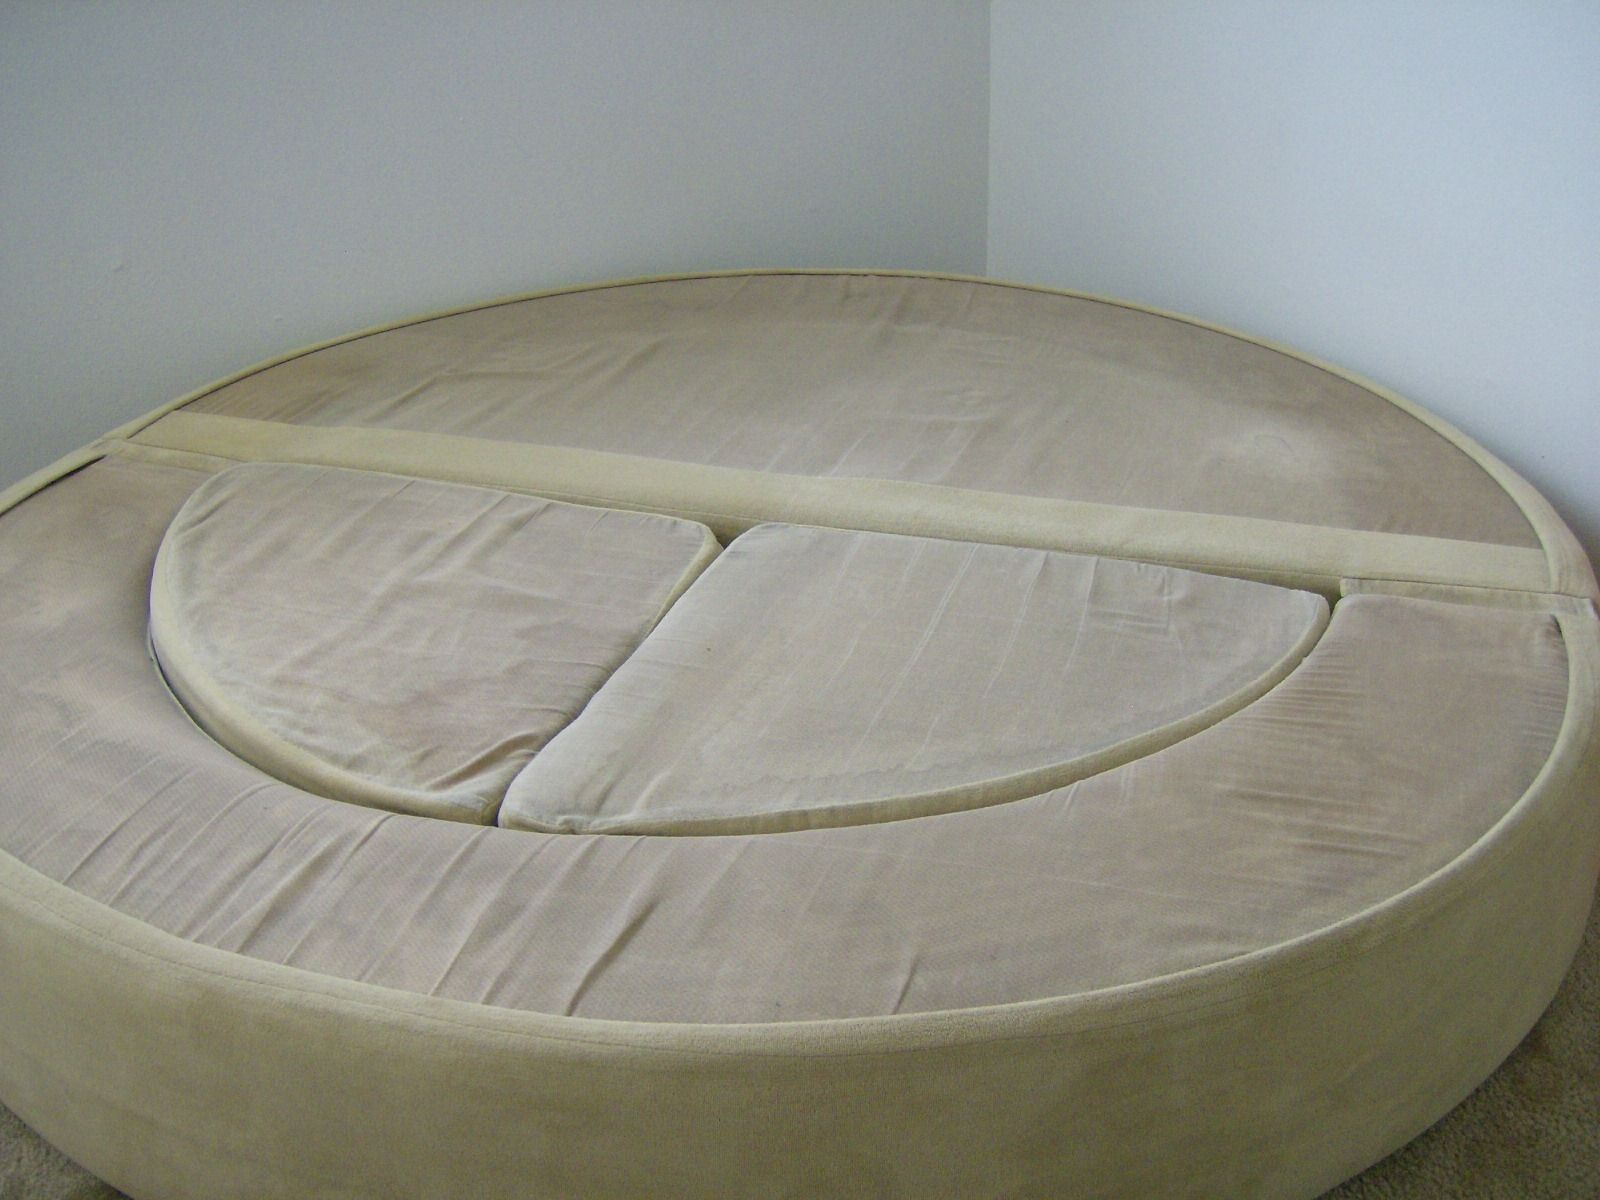 Vintage 1970 S 70 S Round Circular Modern Mod Sofa Bed